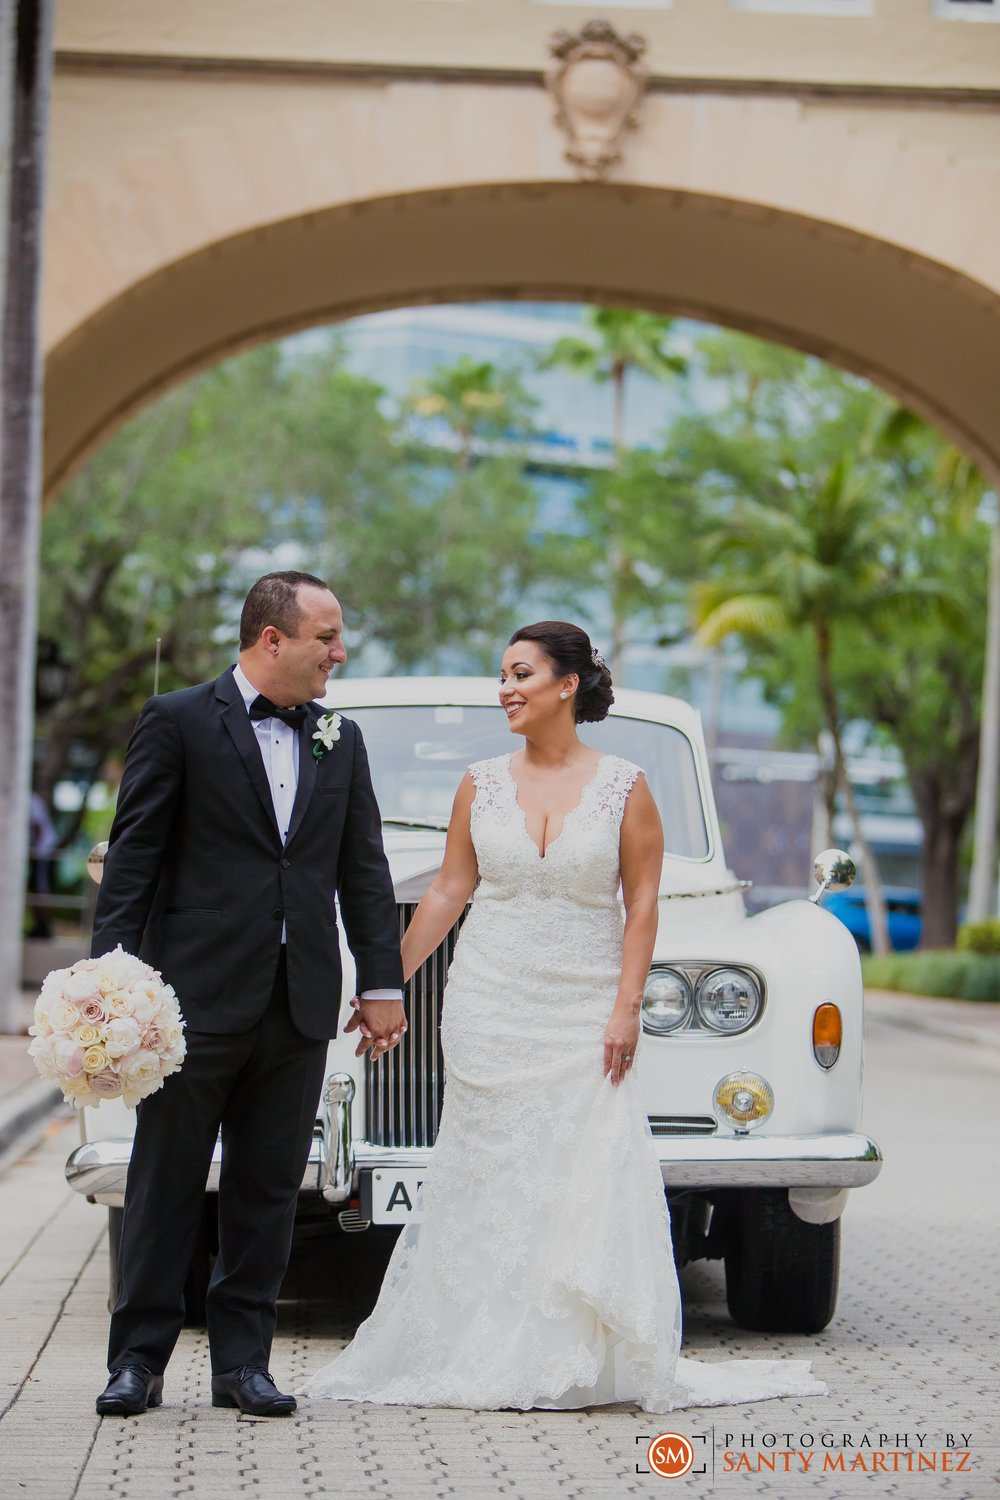 Wedding Douglas Entrance - Photography by Santy Martinez-13.jpg